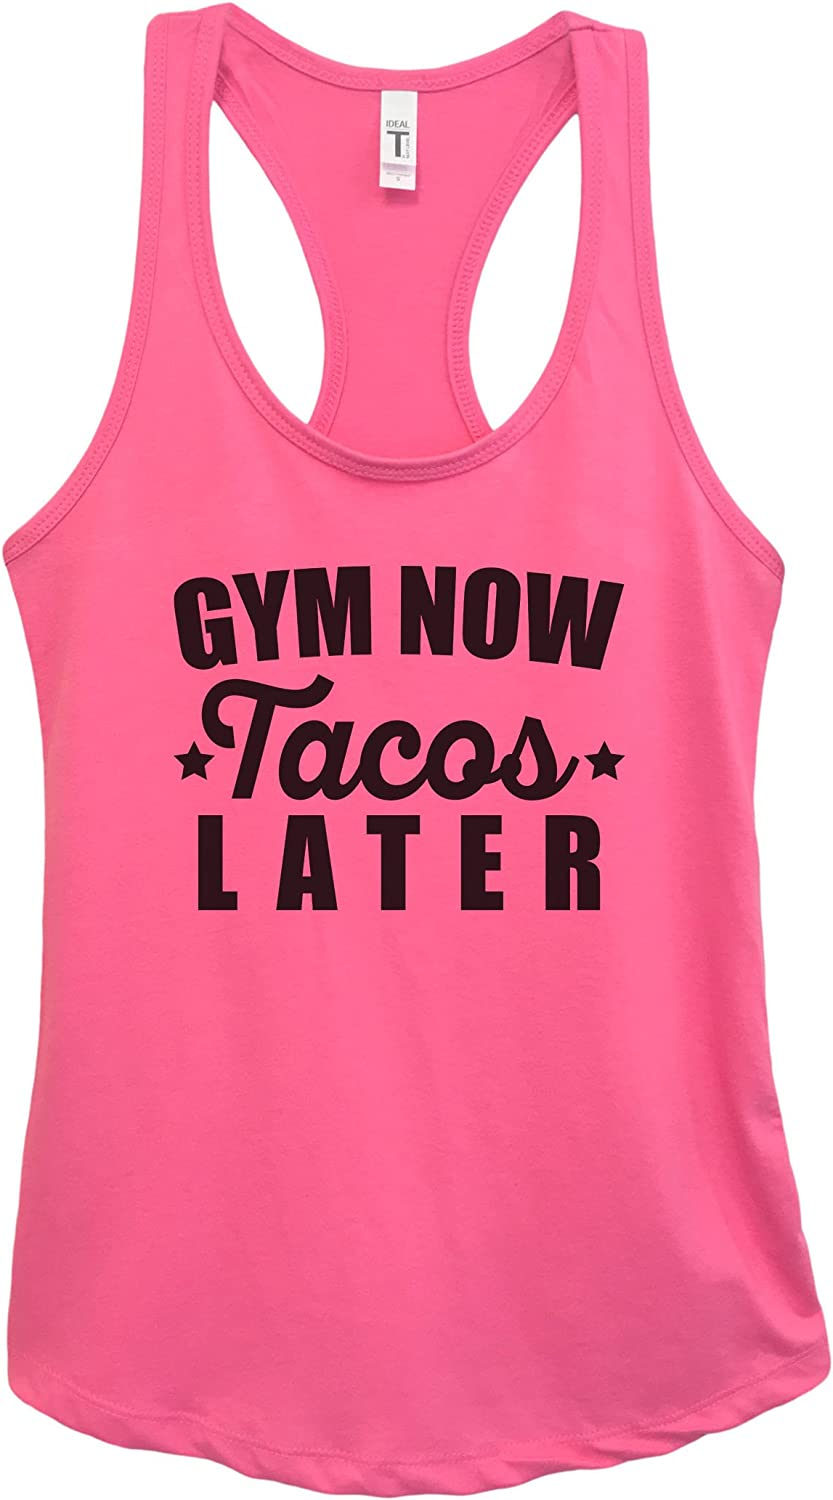 """Funny Threadz Womens Basic Workout Mexican Food Tank Top """"Gym Now Tacos Later"""